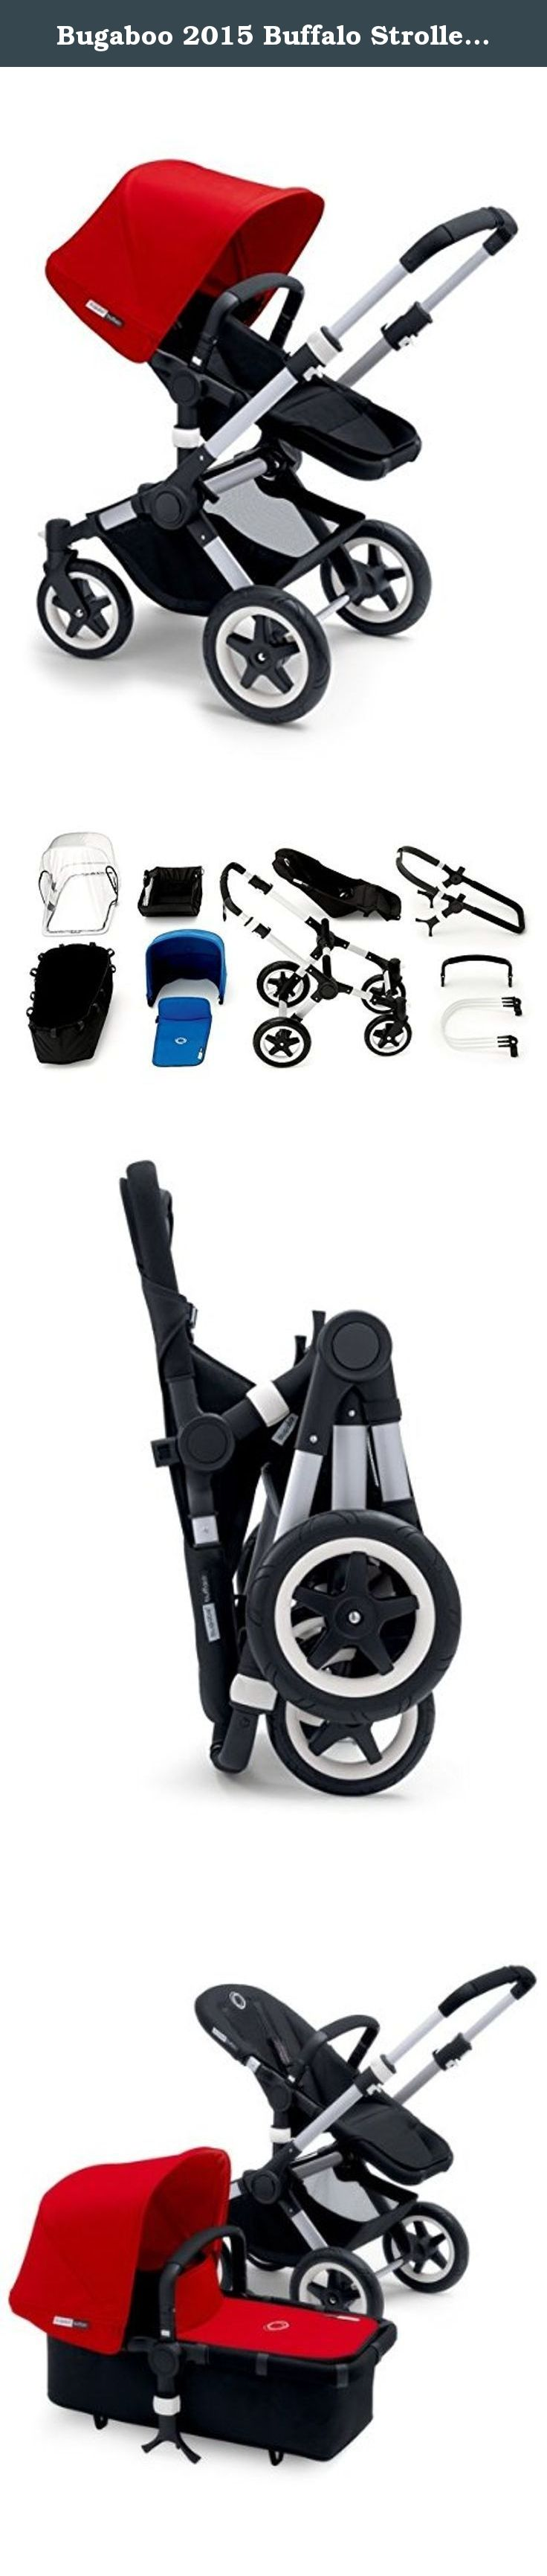 Bugaboo 2015 Buffalo Stroller Complete Set in Aluminum and